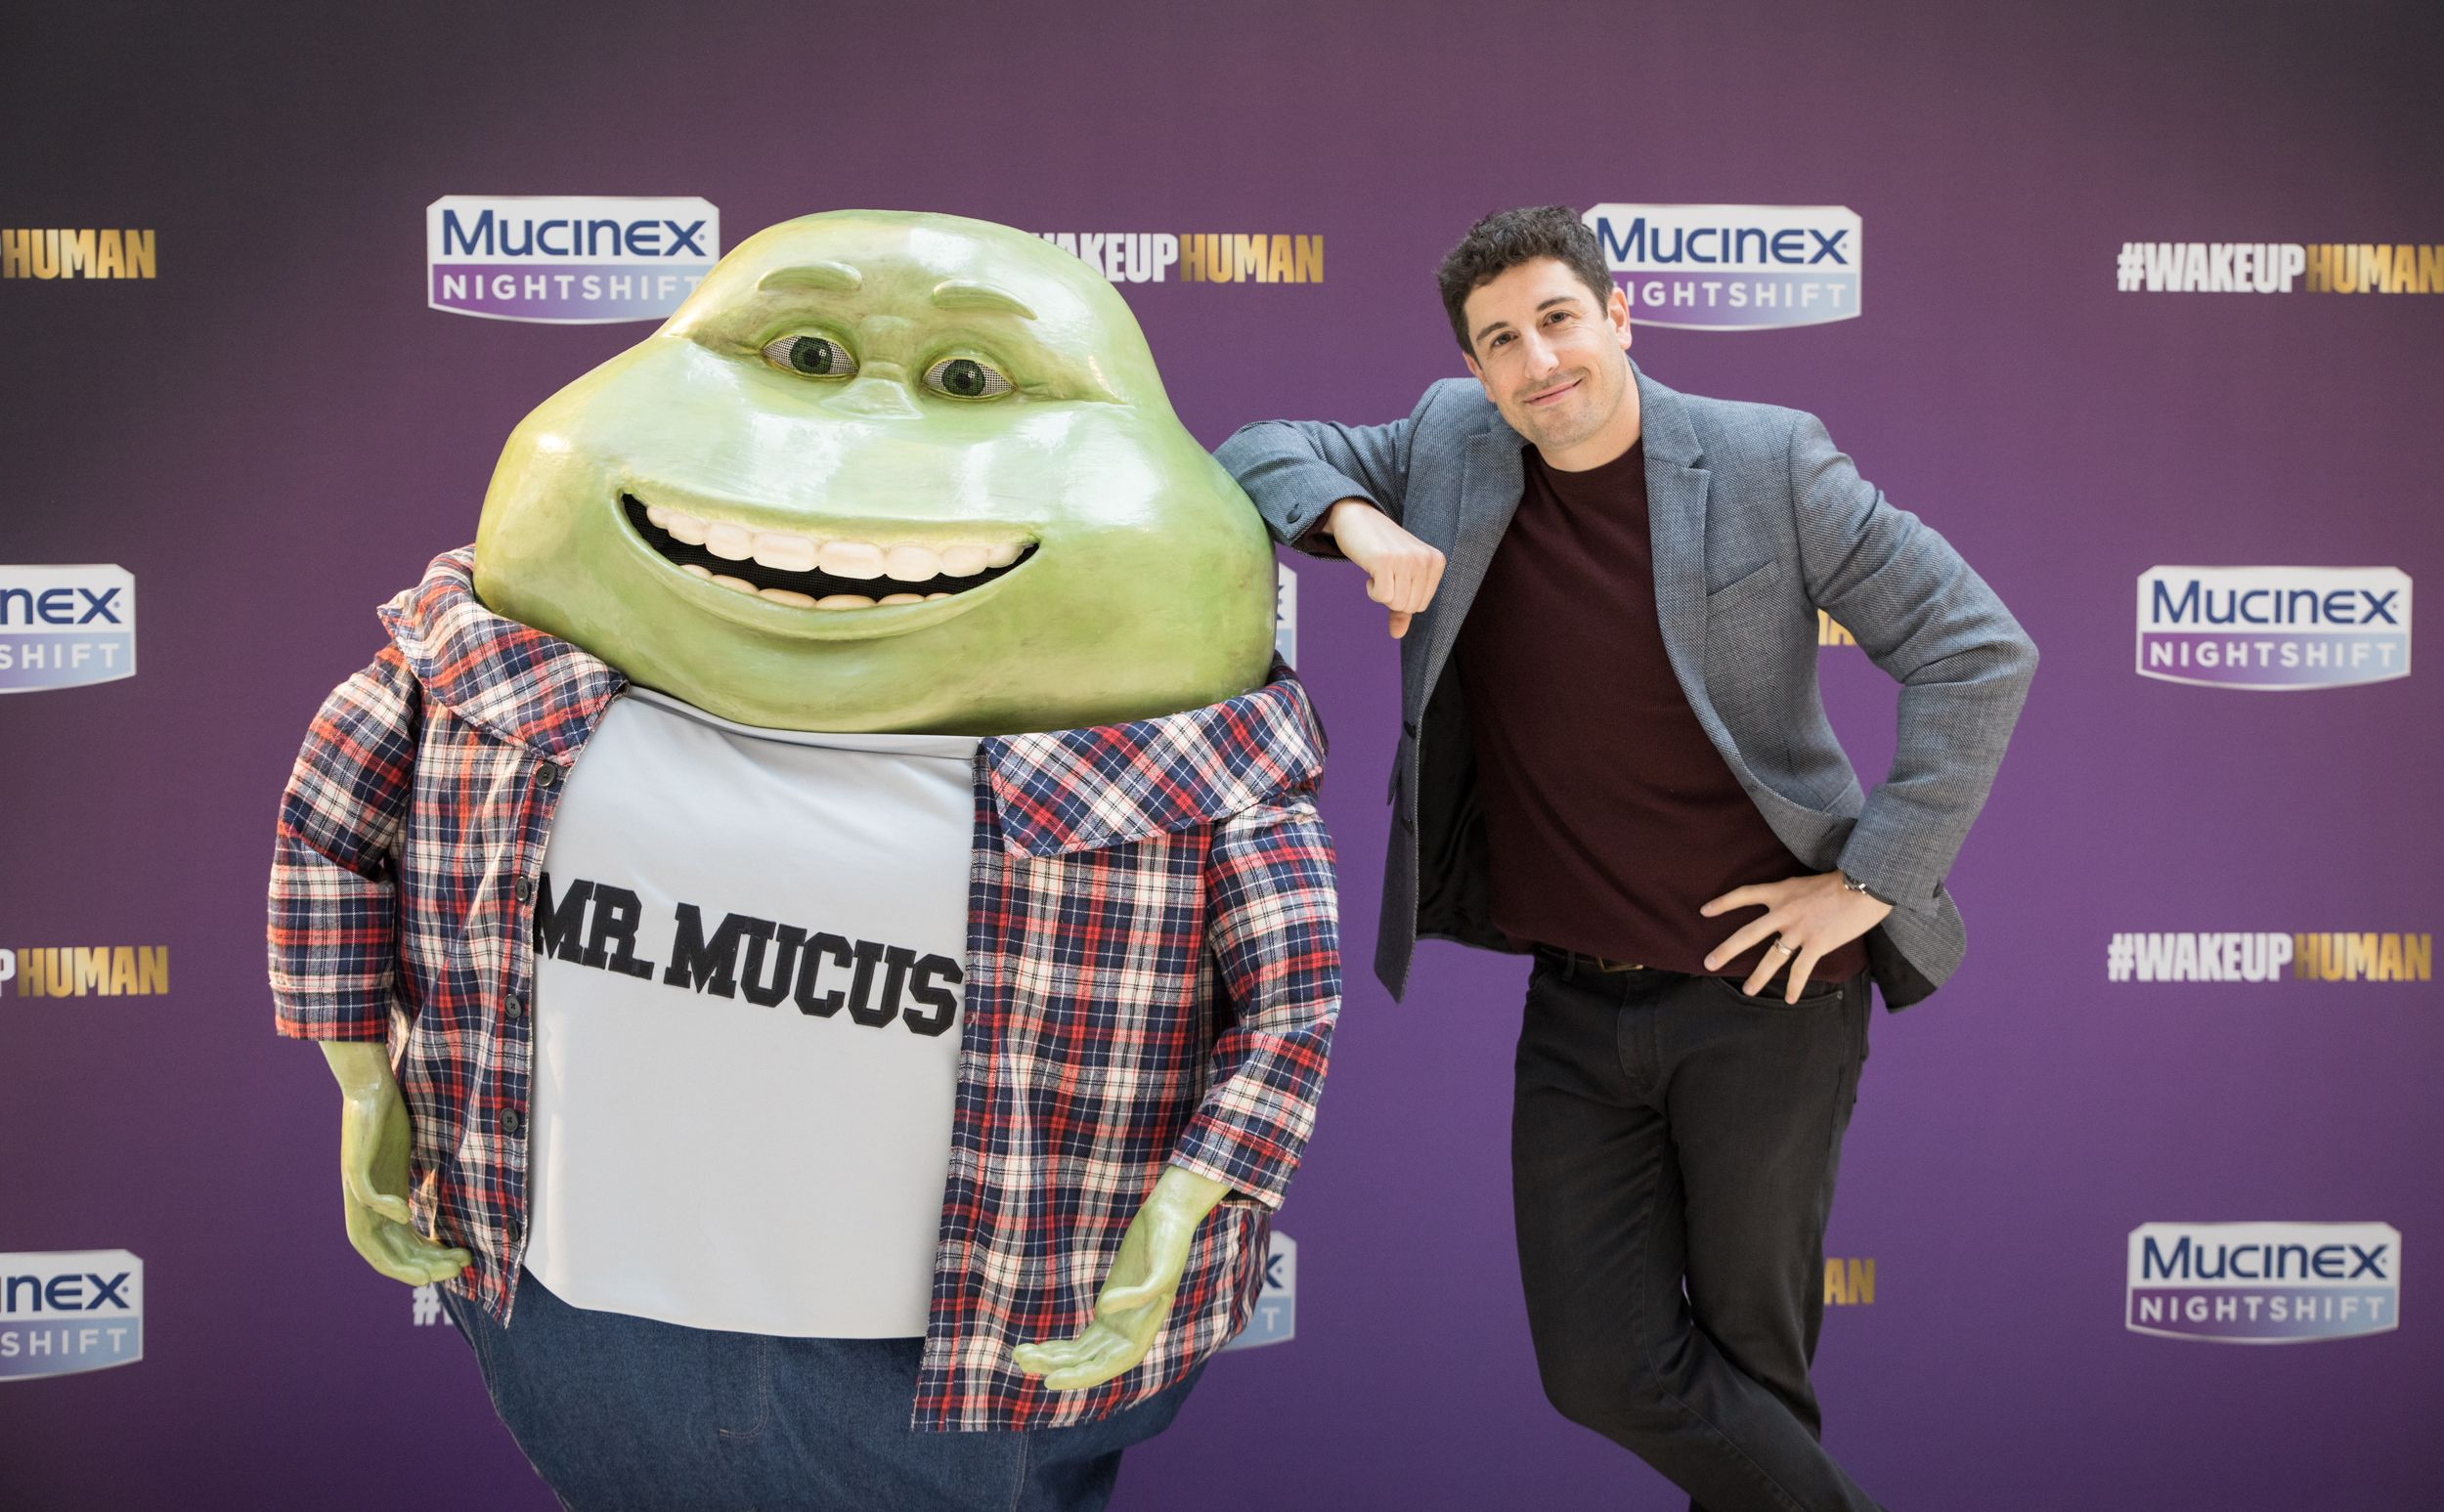 21 Important Questions About This Photo of Jason Biggs and Mr. Mucus